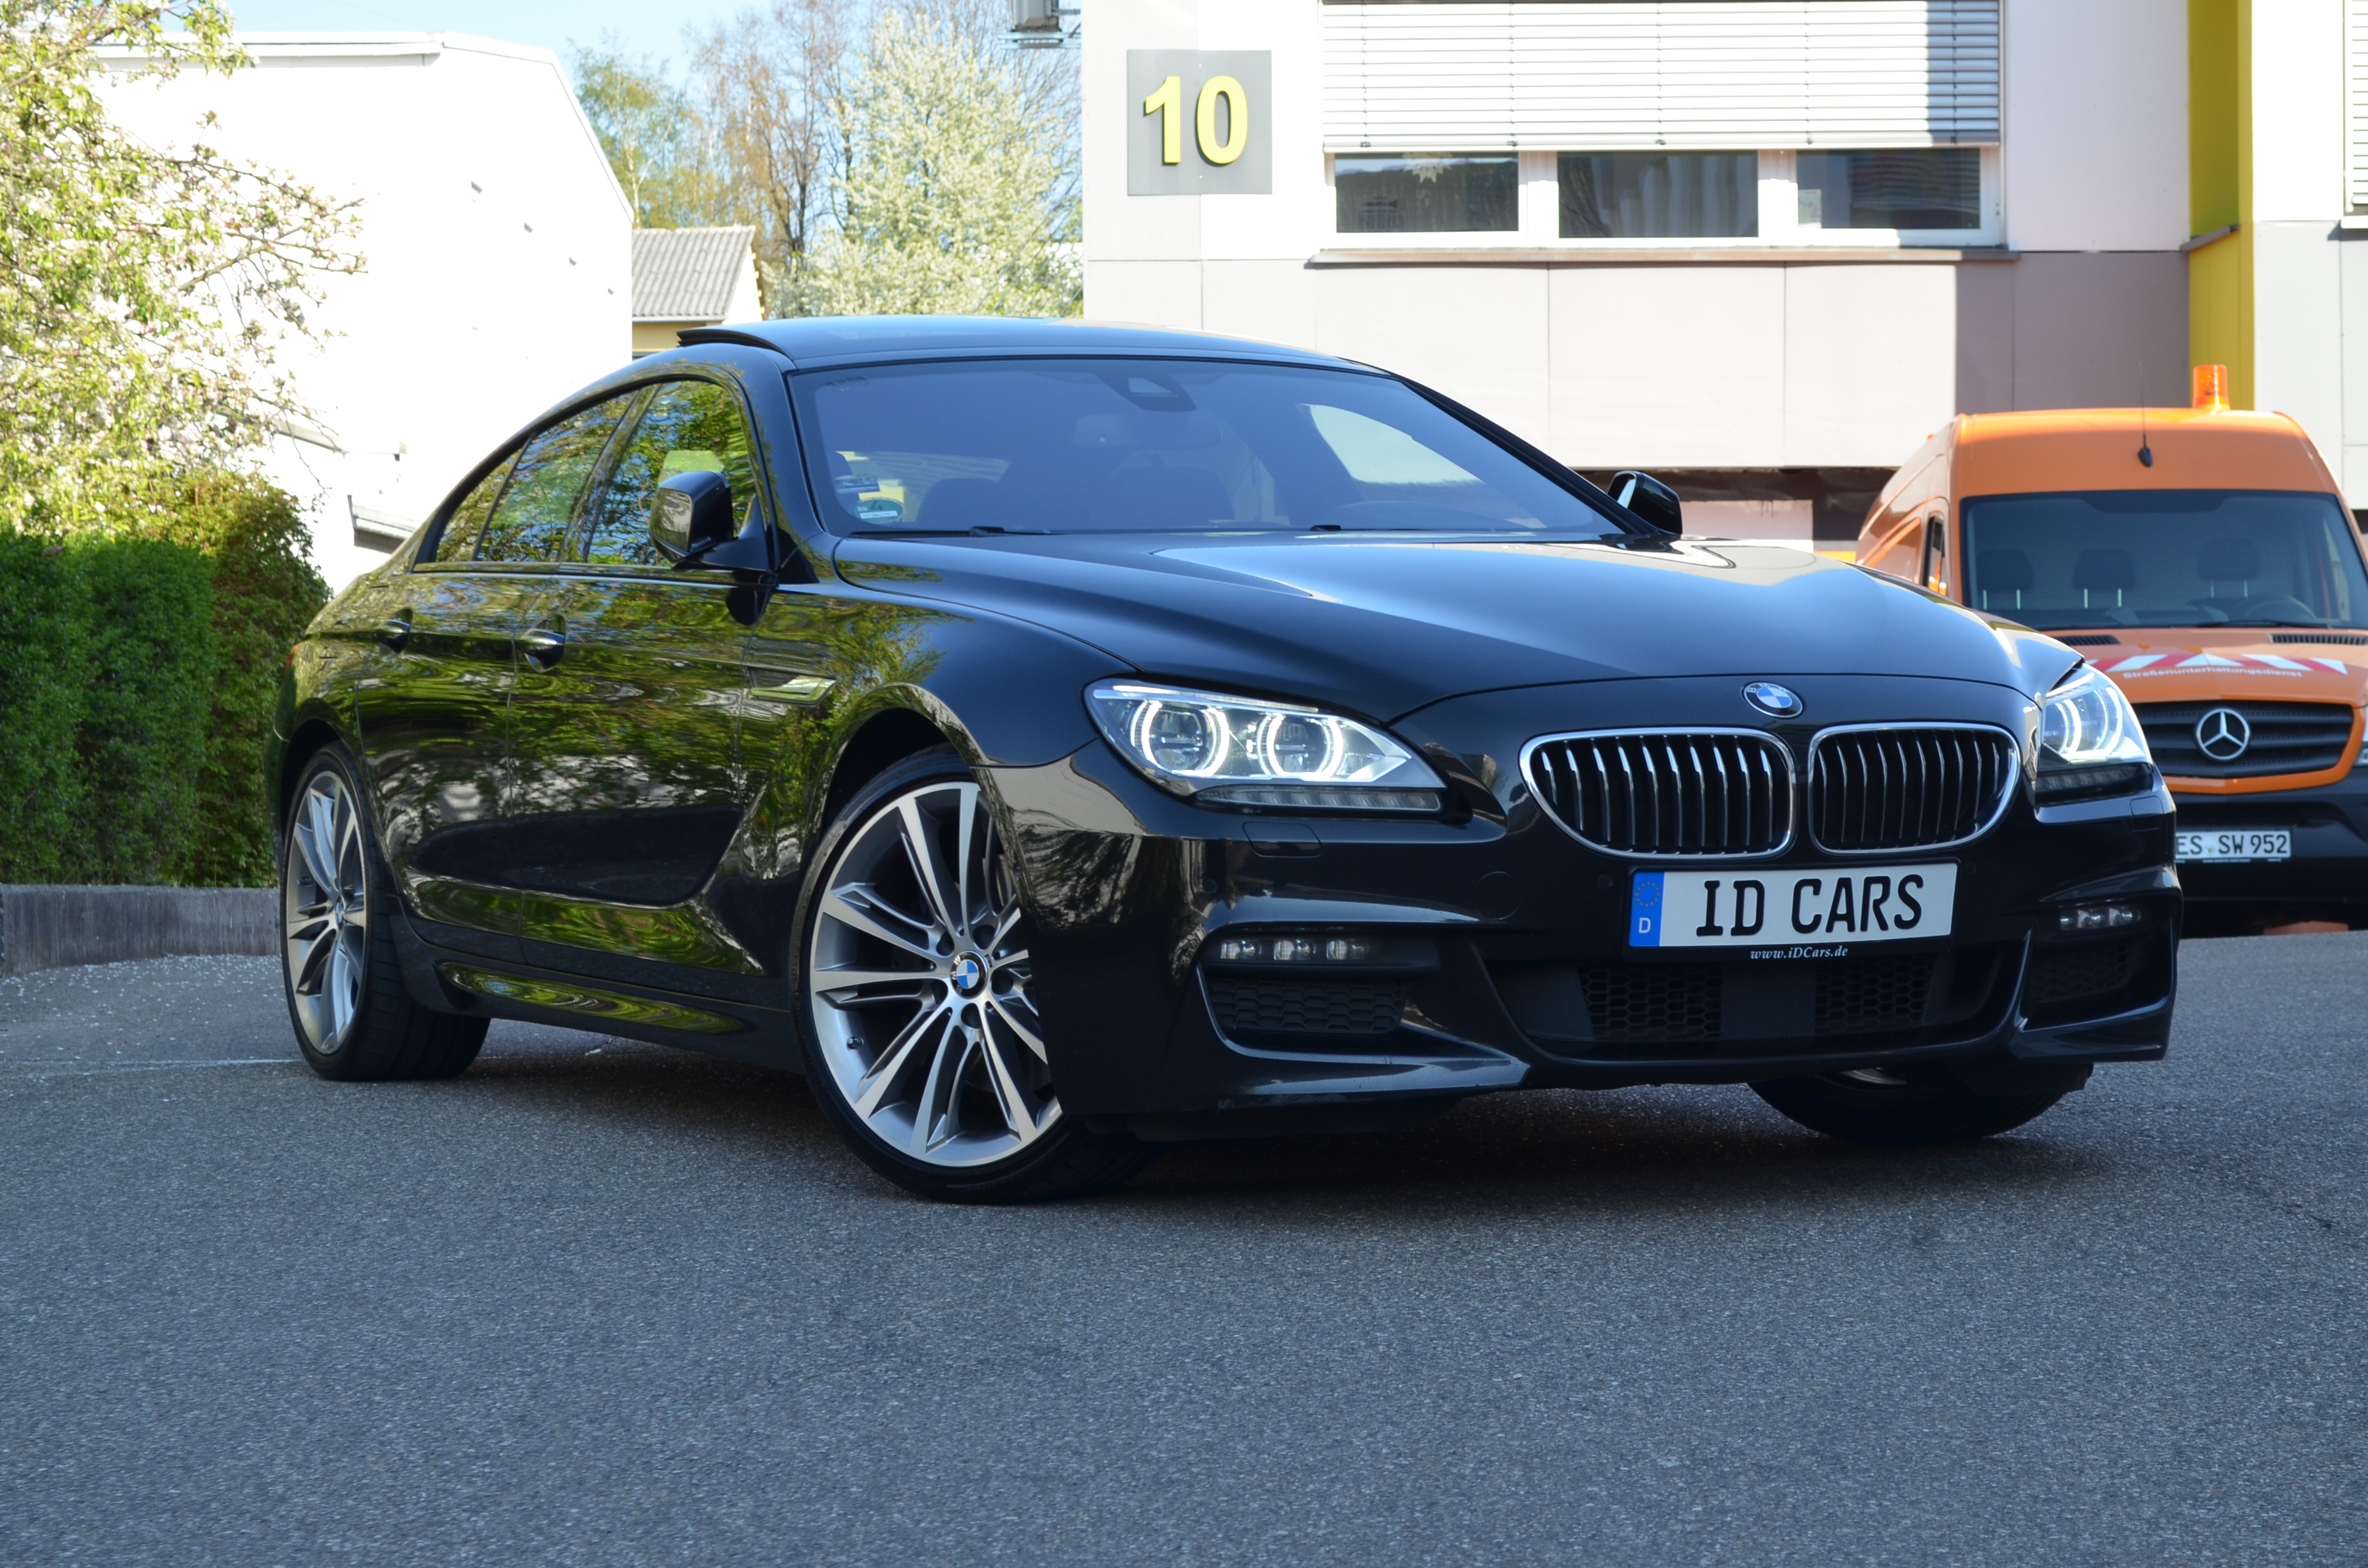 2014 bmw 6 gran coupe 640d xdrive m sport paket led b o. Black Bedroom Furniture Sets. Home Design Ideas